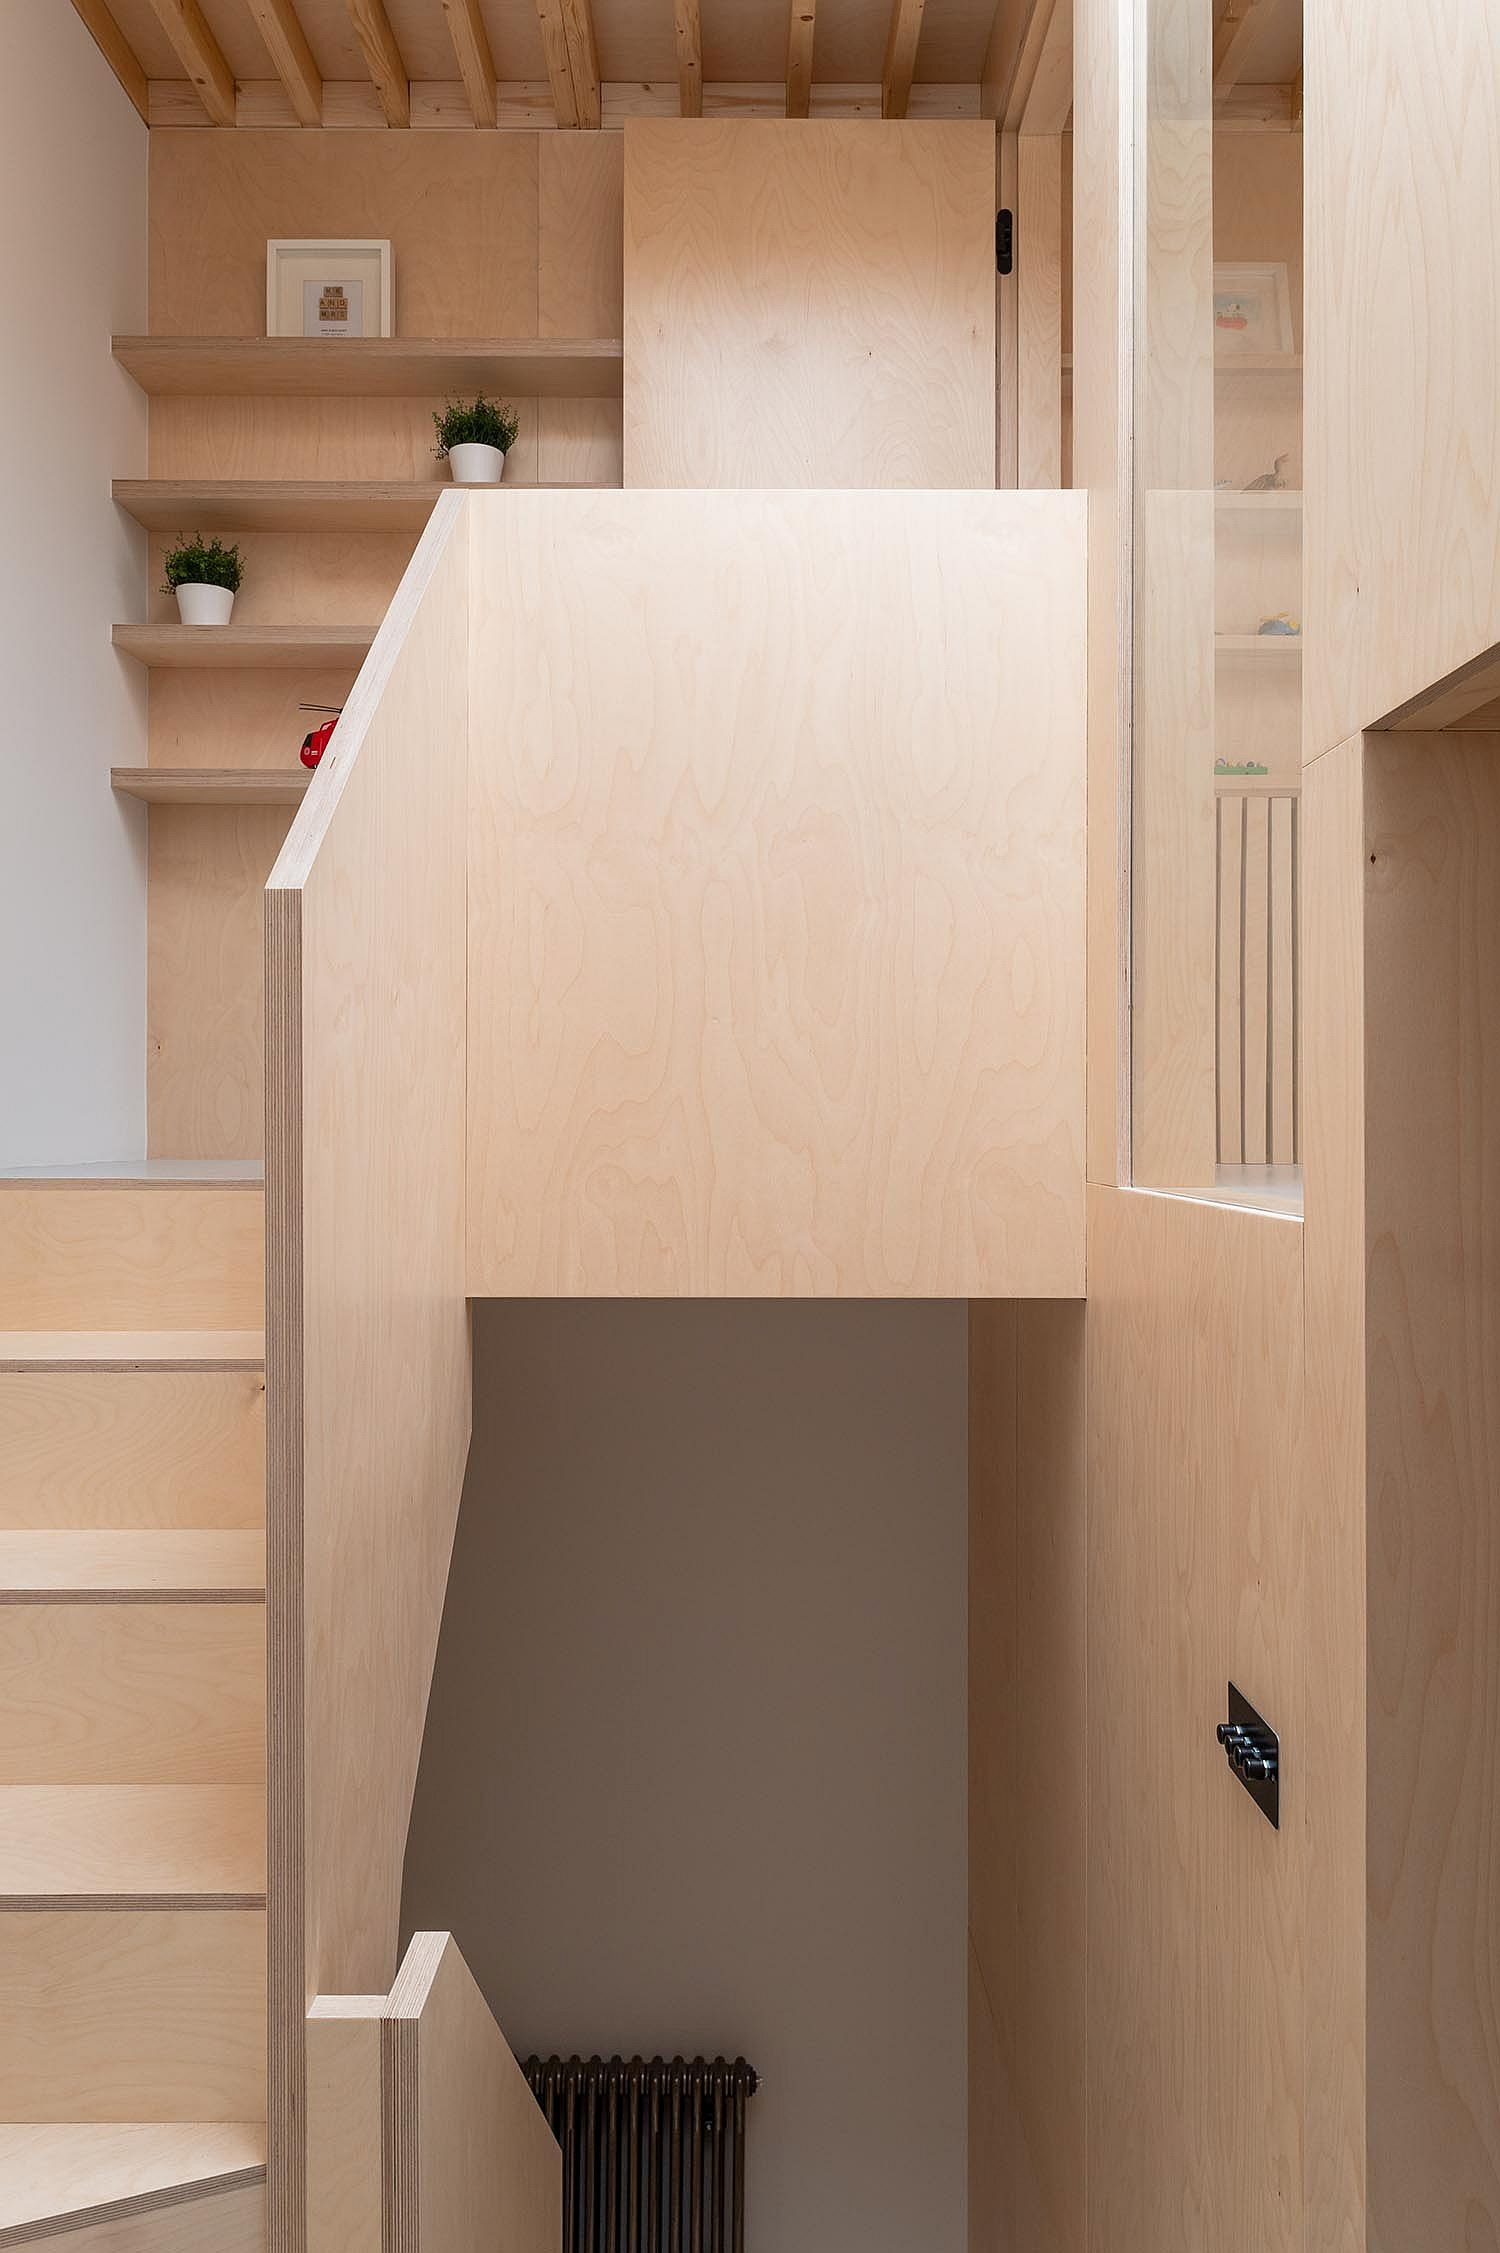 Plywood clad-walls and staircase completely alter the interior of the this London home